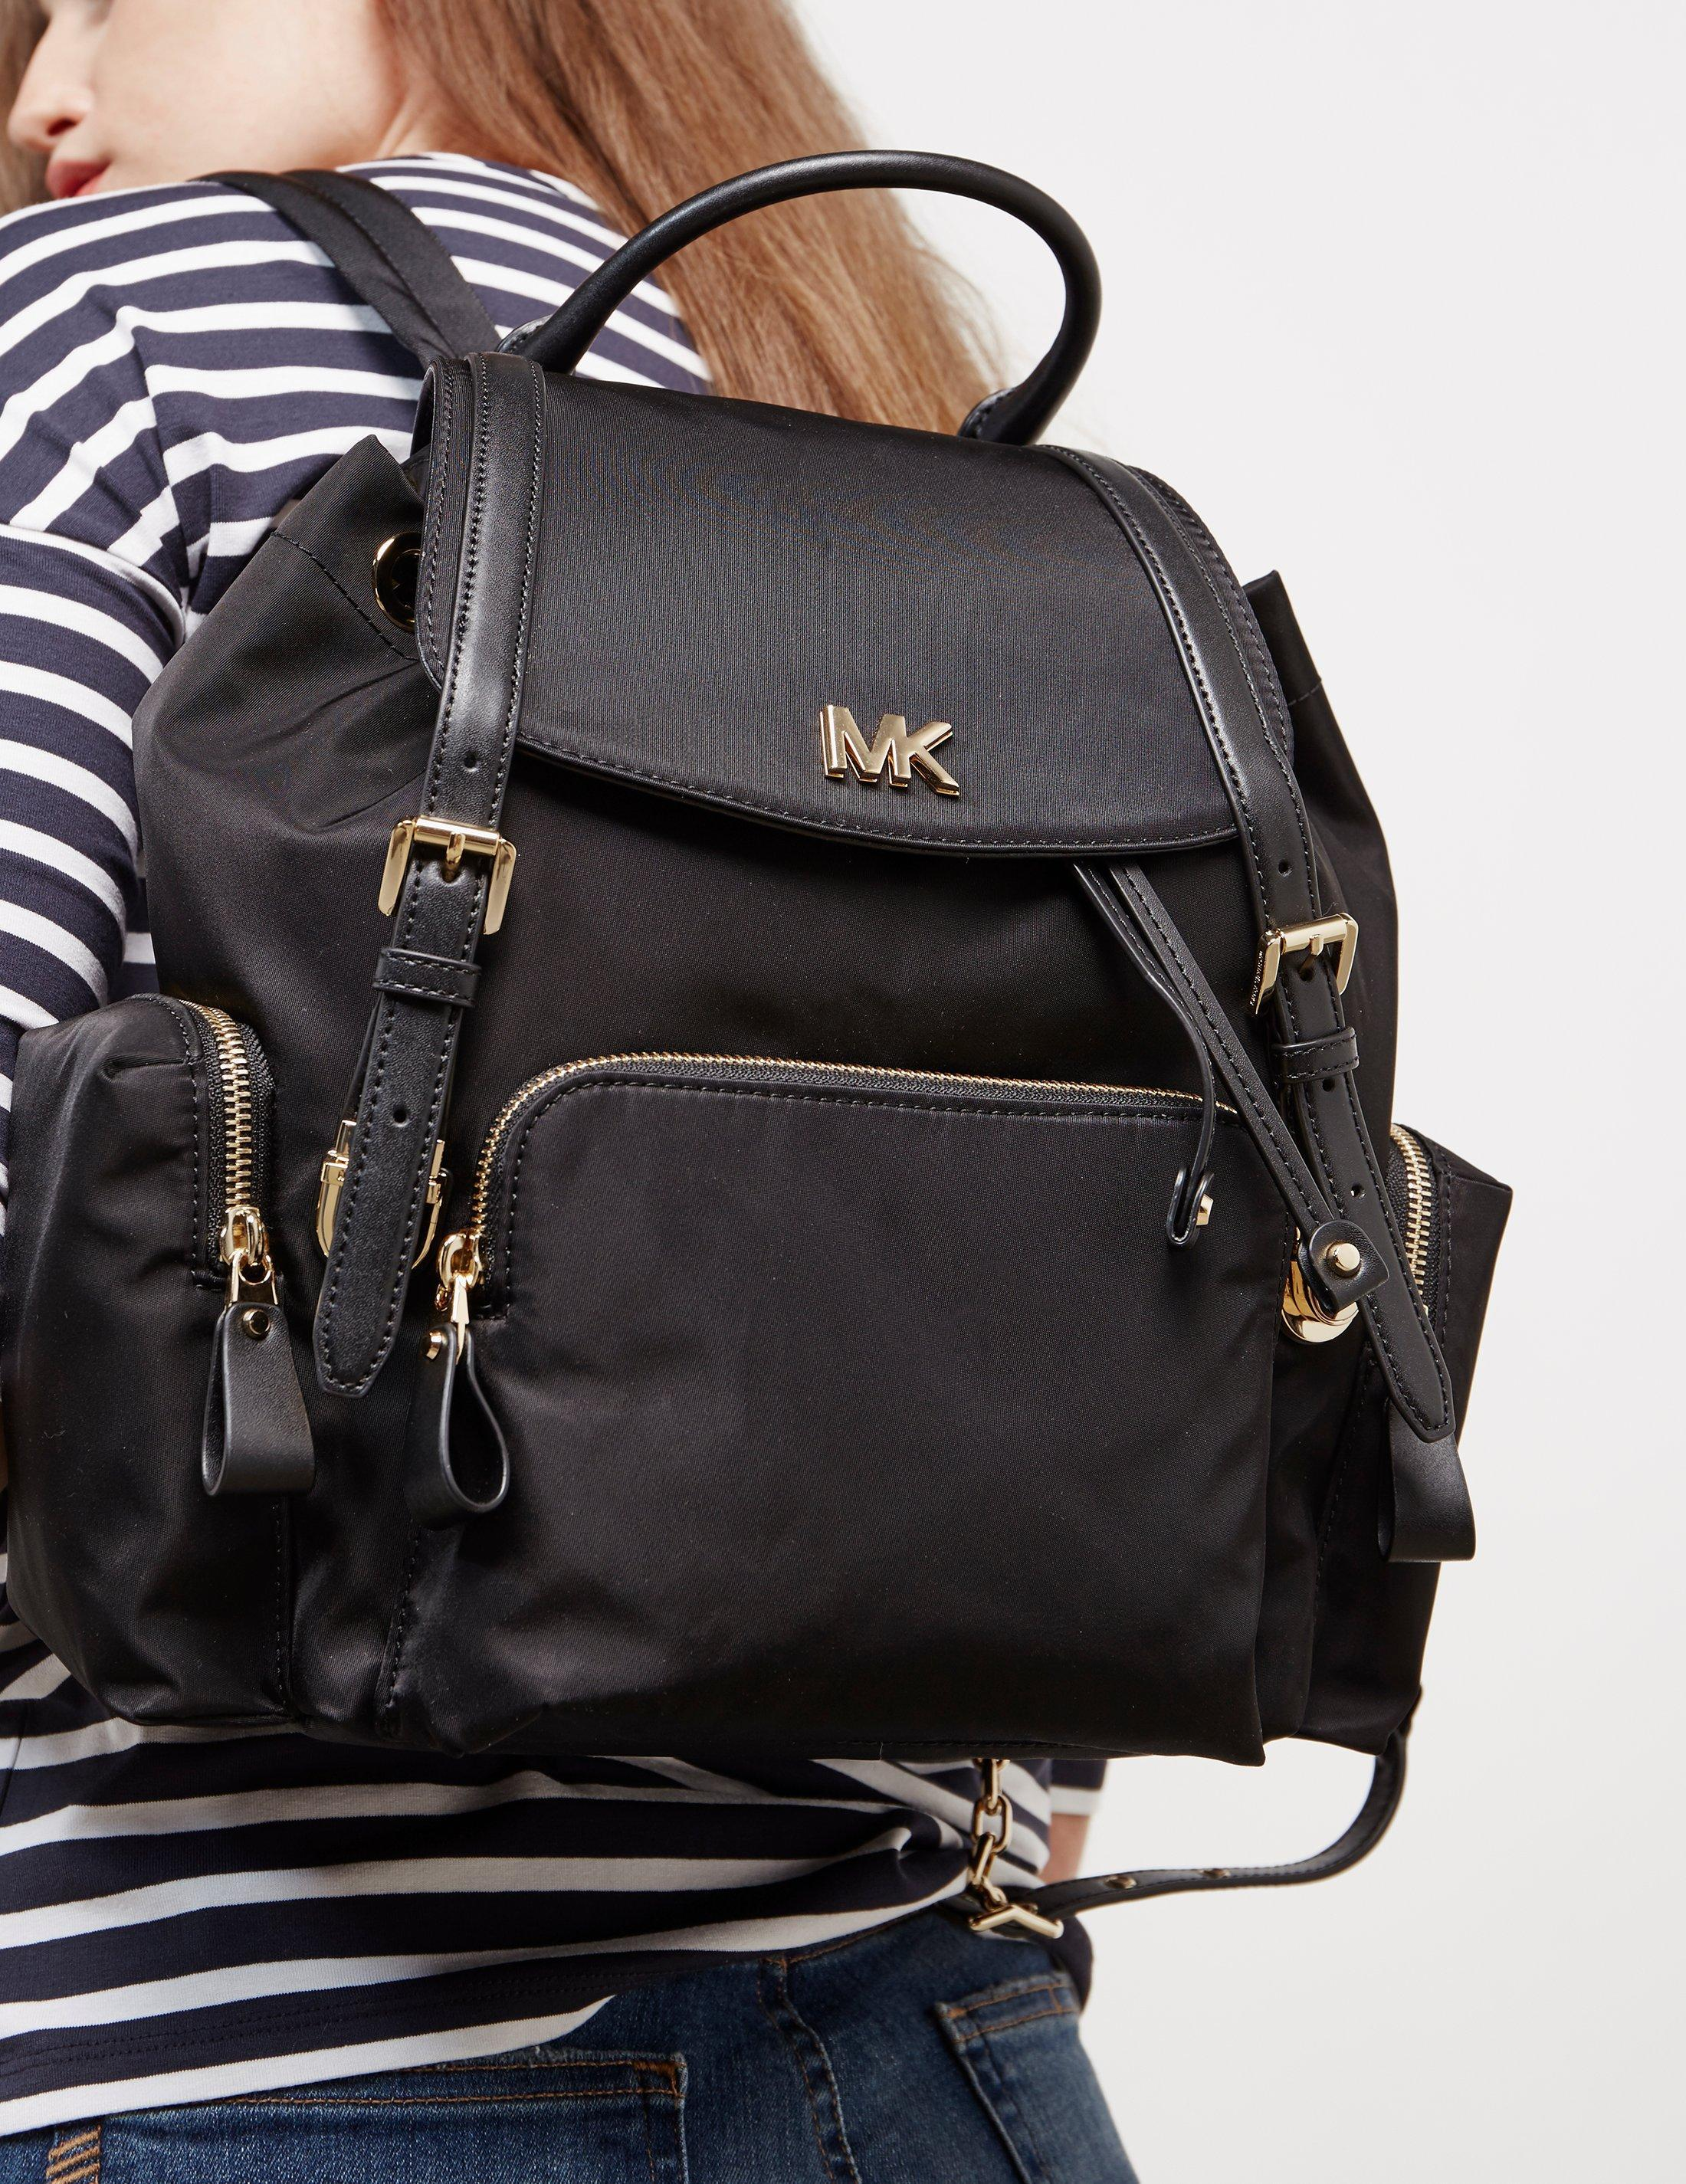 e7a0aab70637 Michael Kors Womens Beacon Backpack Black in Black - Lyst